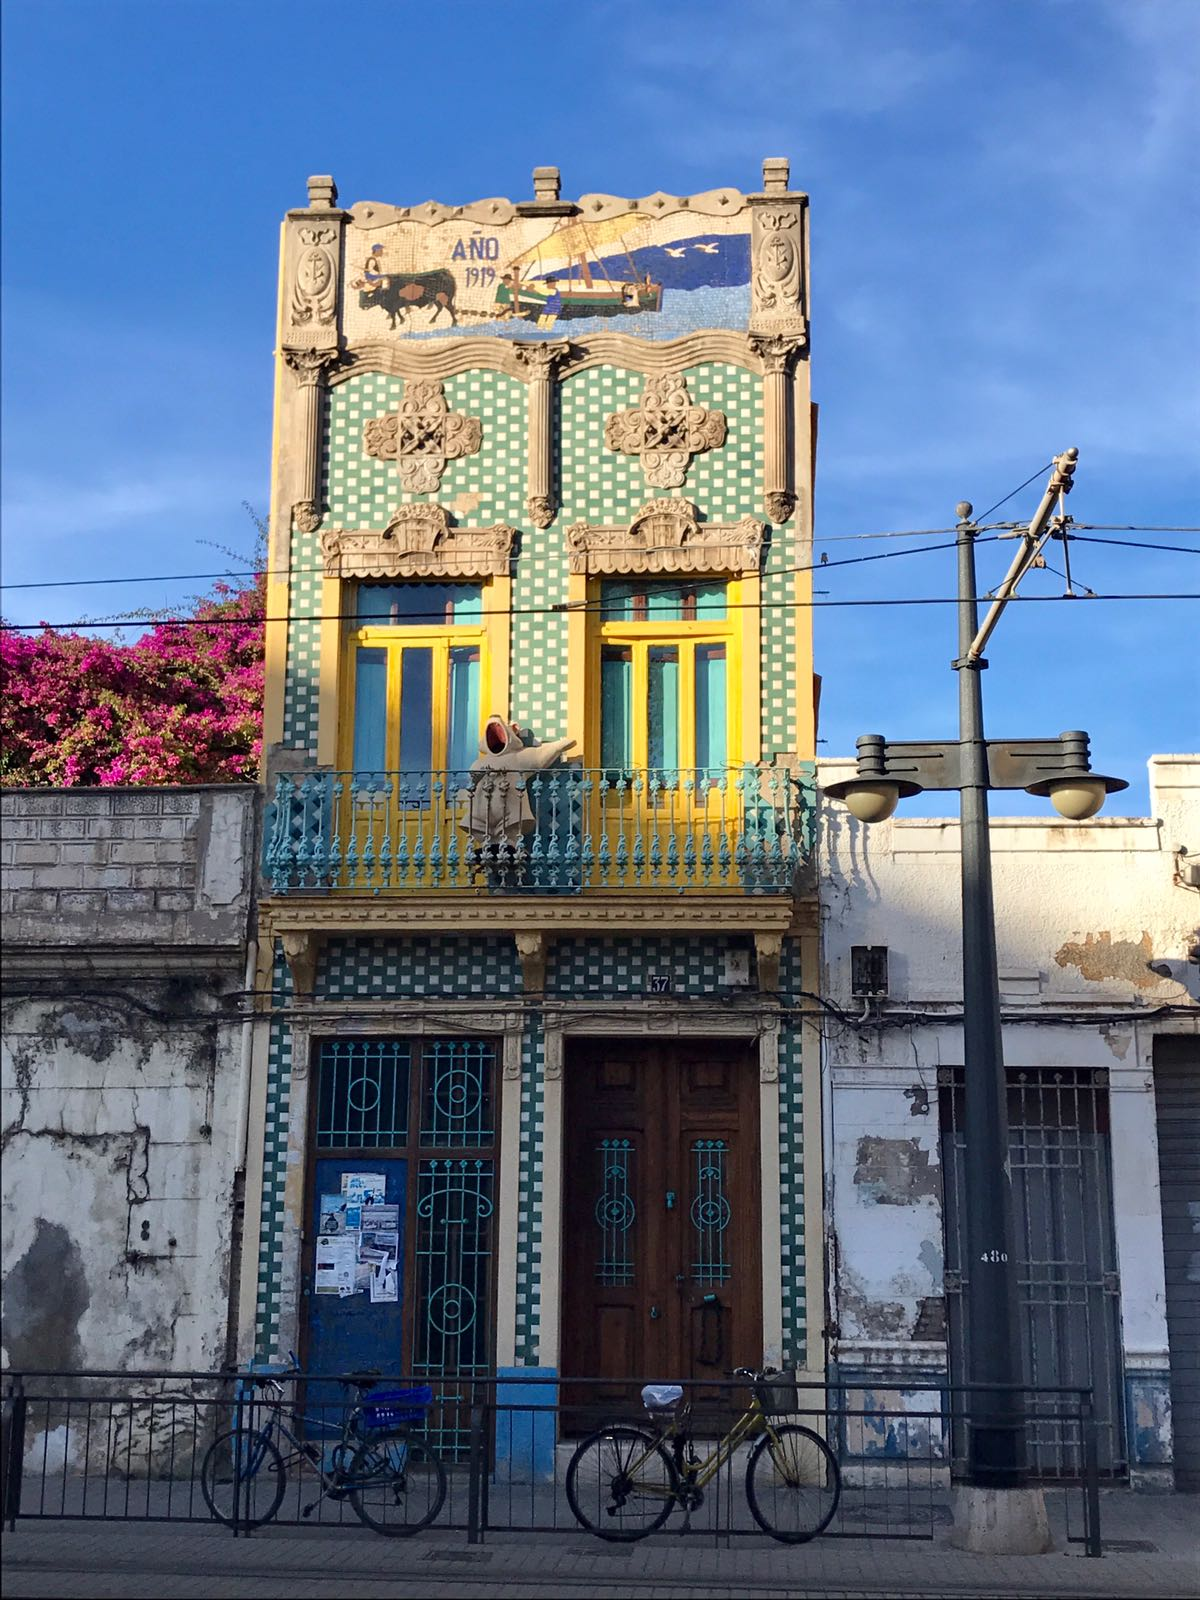 Yellow and blue tiled terrace building in Valencia by the beach